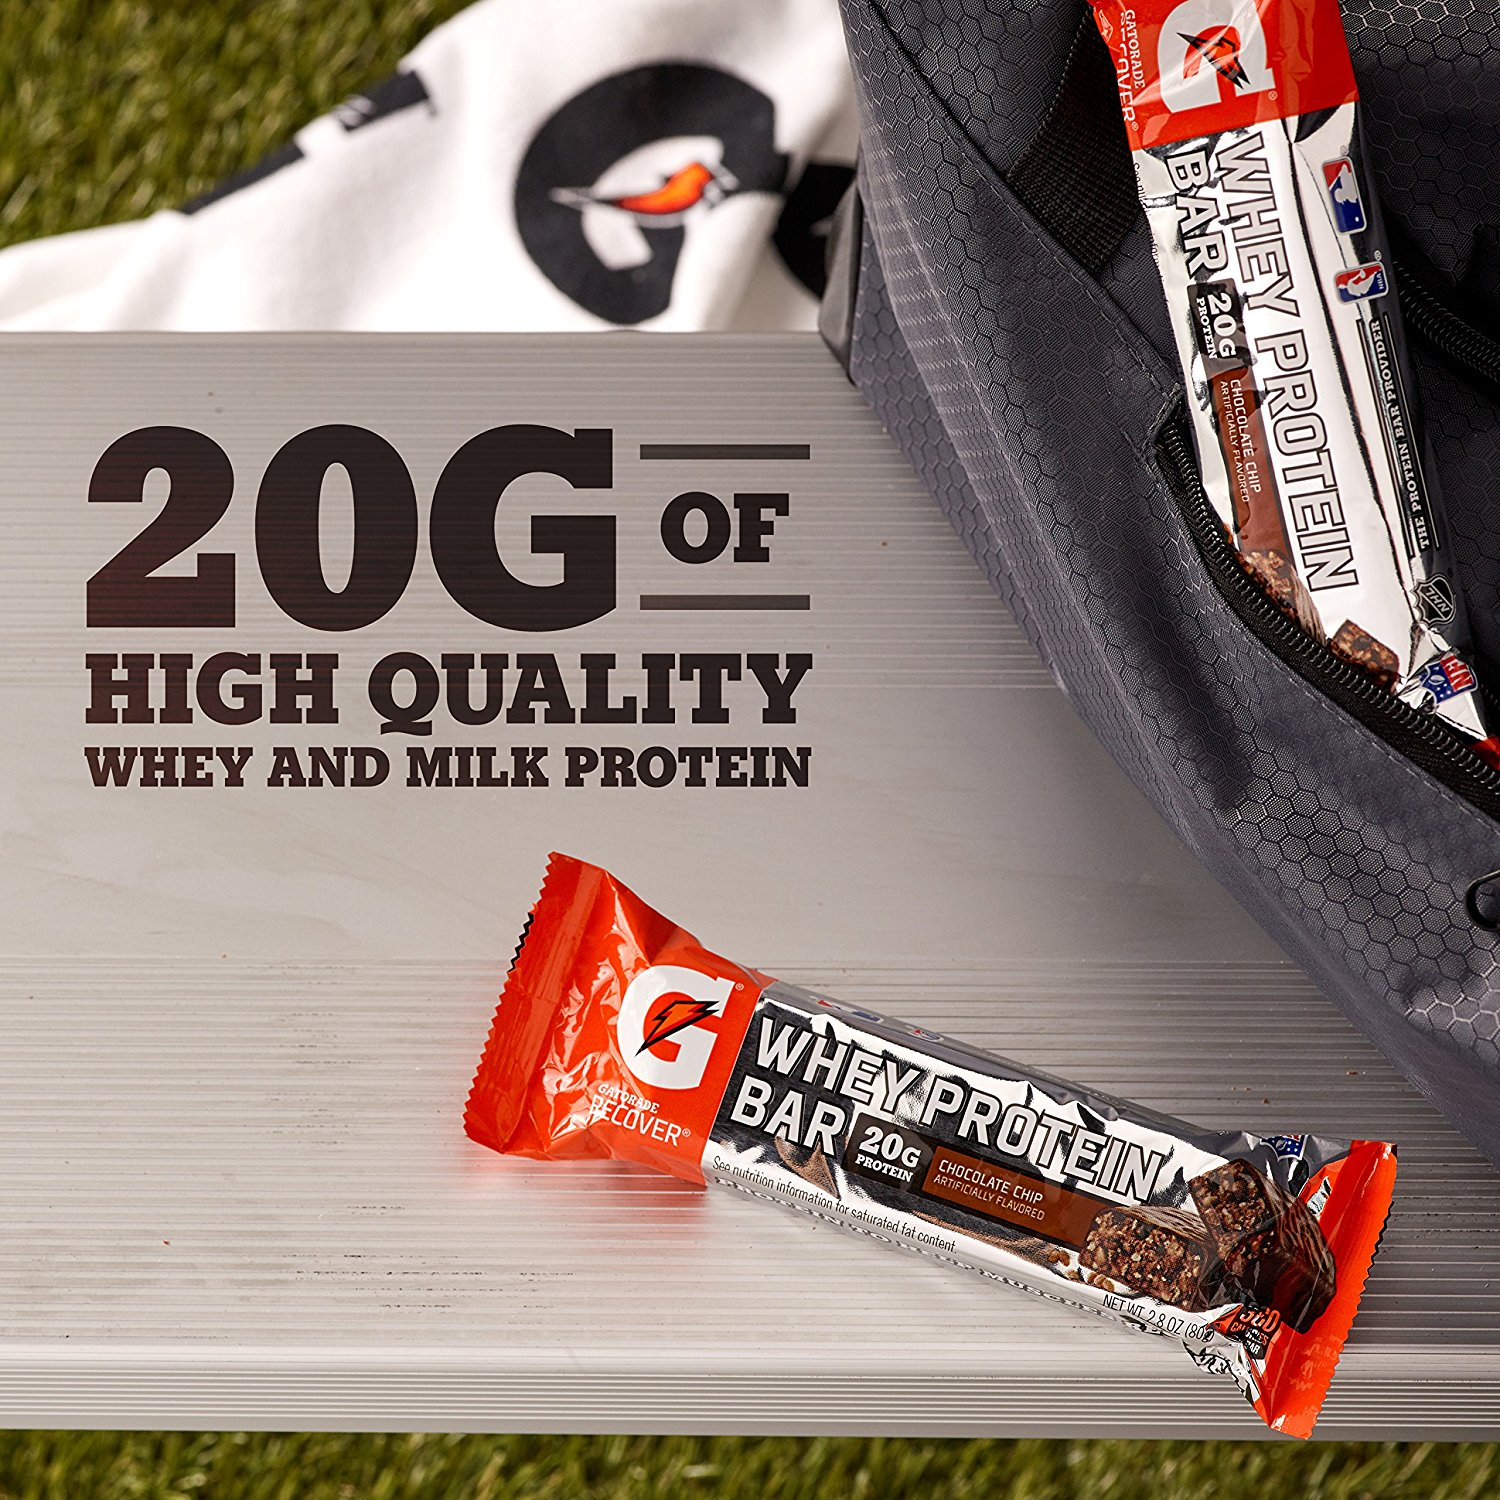 Gatorade Whey Protein Recover Bar Chocolate Chip 20g Protein 6 Ct